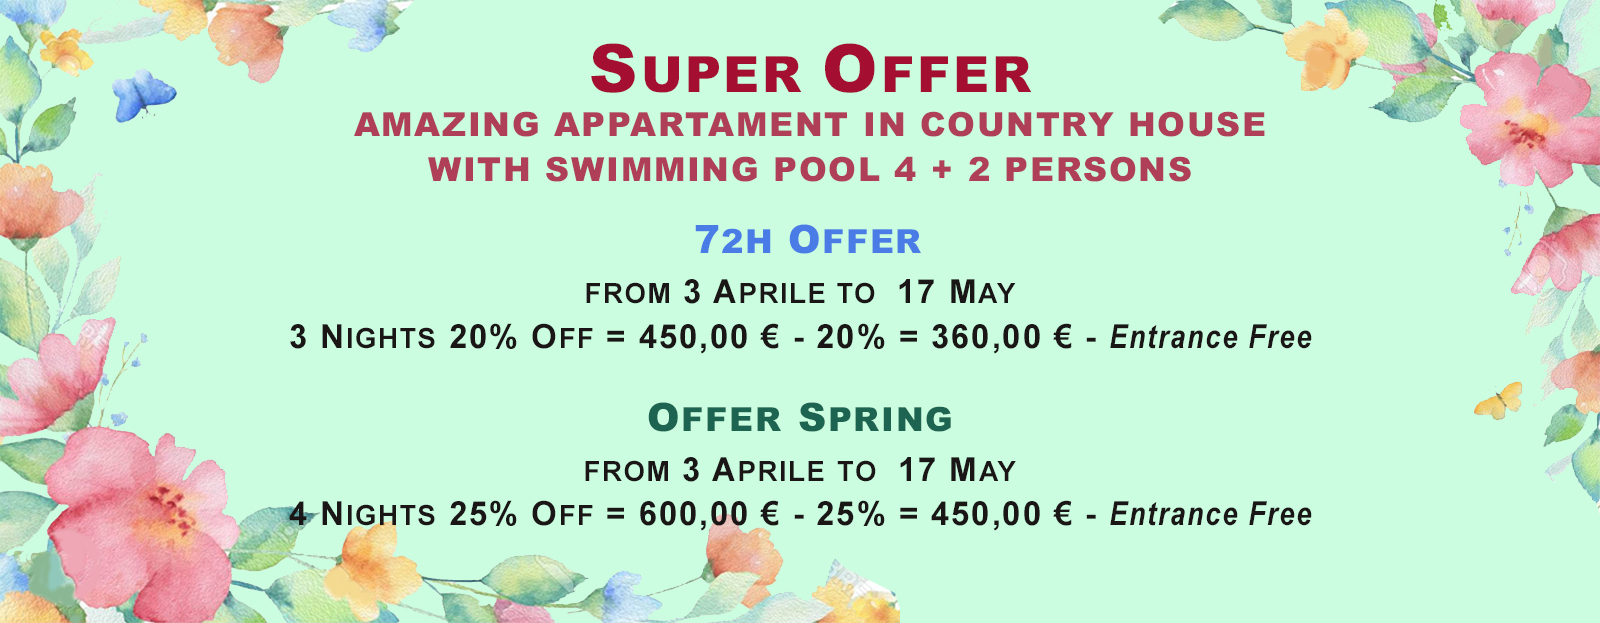 offer may 2018